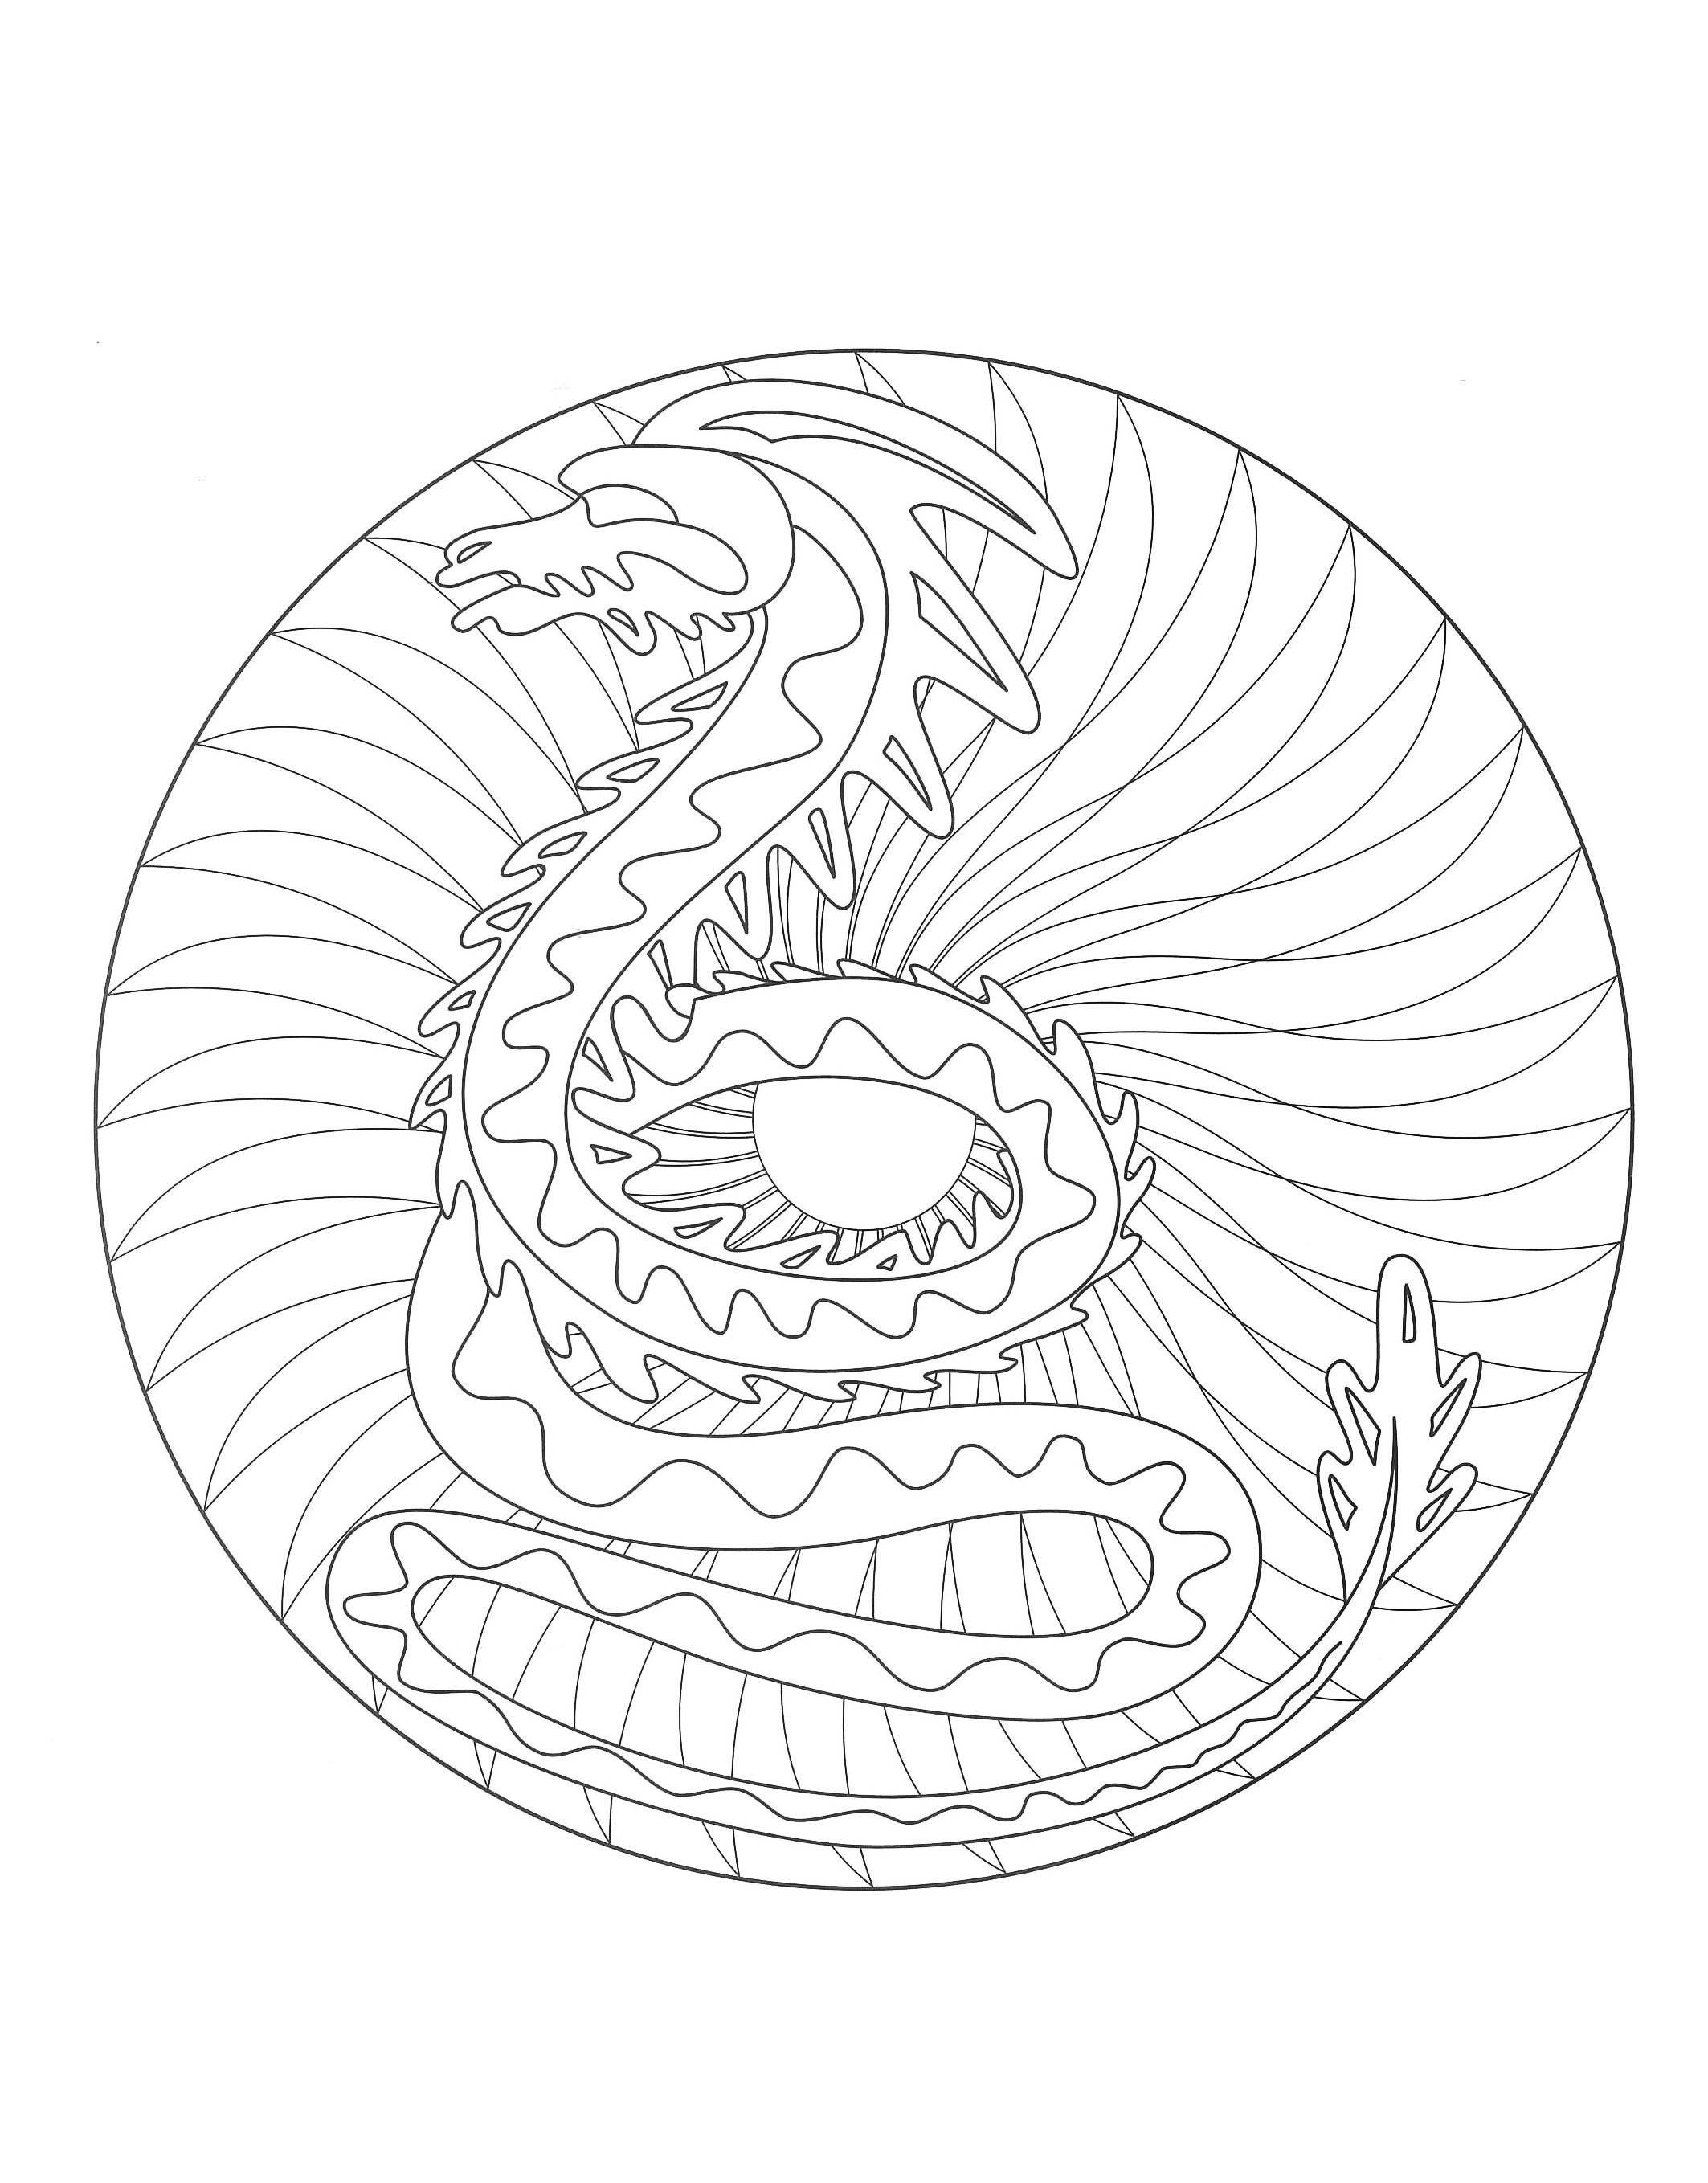 a imprimer mandala dragon 2 coloriage mandalas. Black Bedroom Furniture Sets. Home Design Ideas